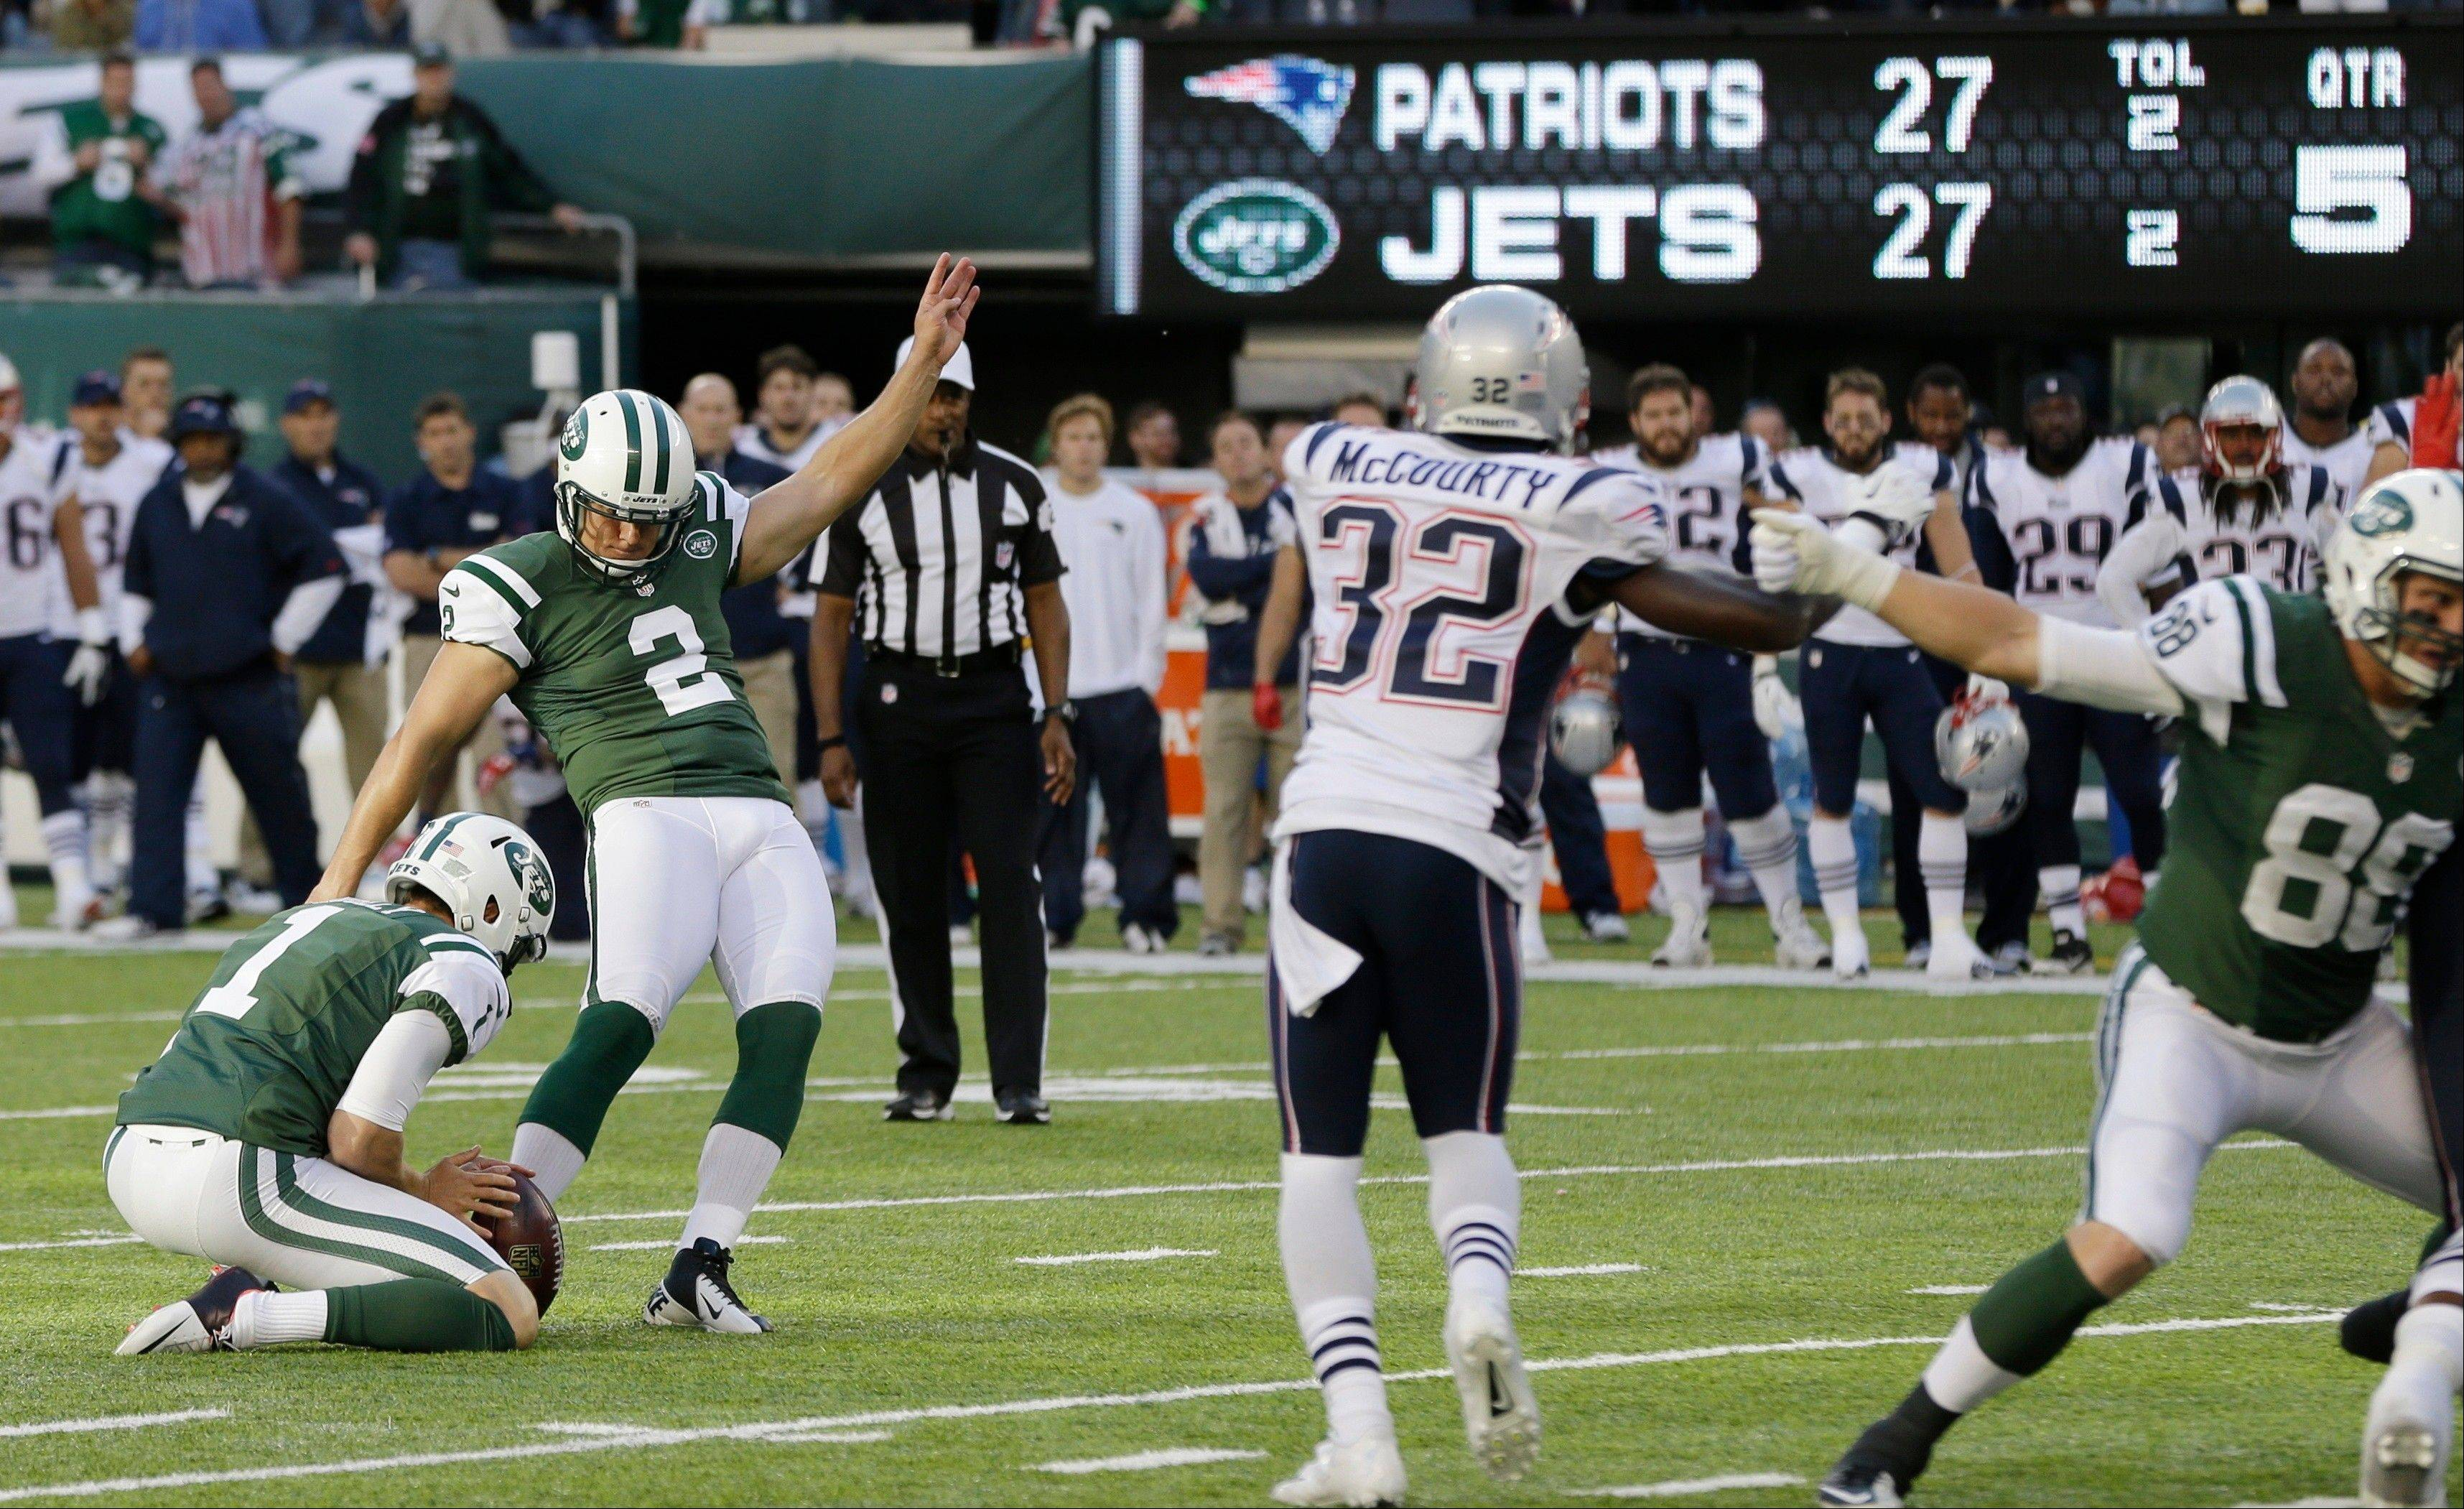 New York Jets kicker Nick Folk (2) kicks a field goal to win the game during overtime of an NFL football game against the New England Patriots Sunday, Oct. 20, 2013 in East Rutherford, N.J. The Jets won the game 30-27. The Patriots' Devin McCourty (32) is at center.